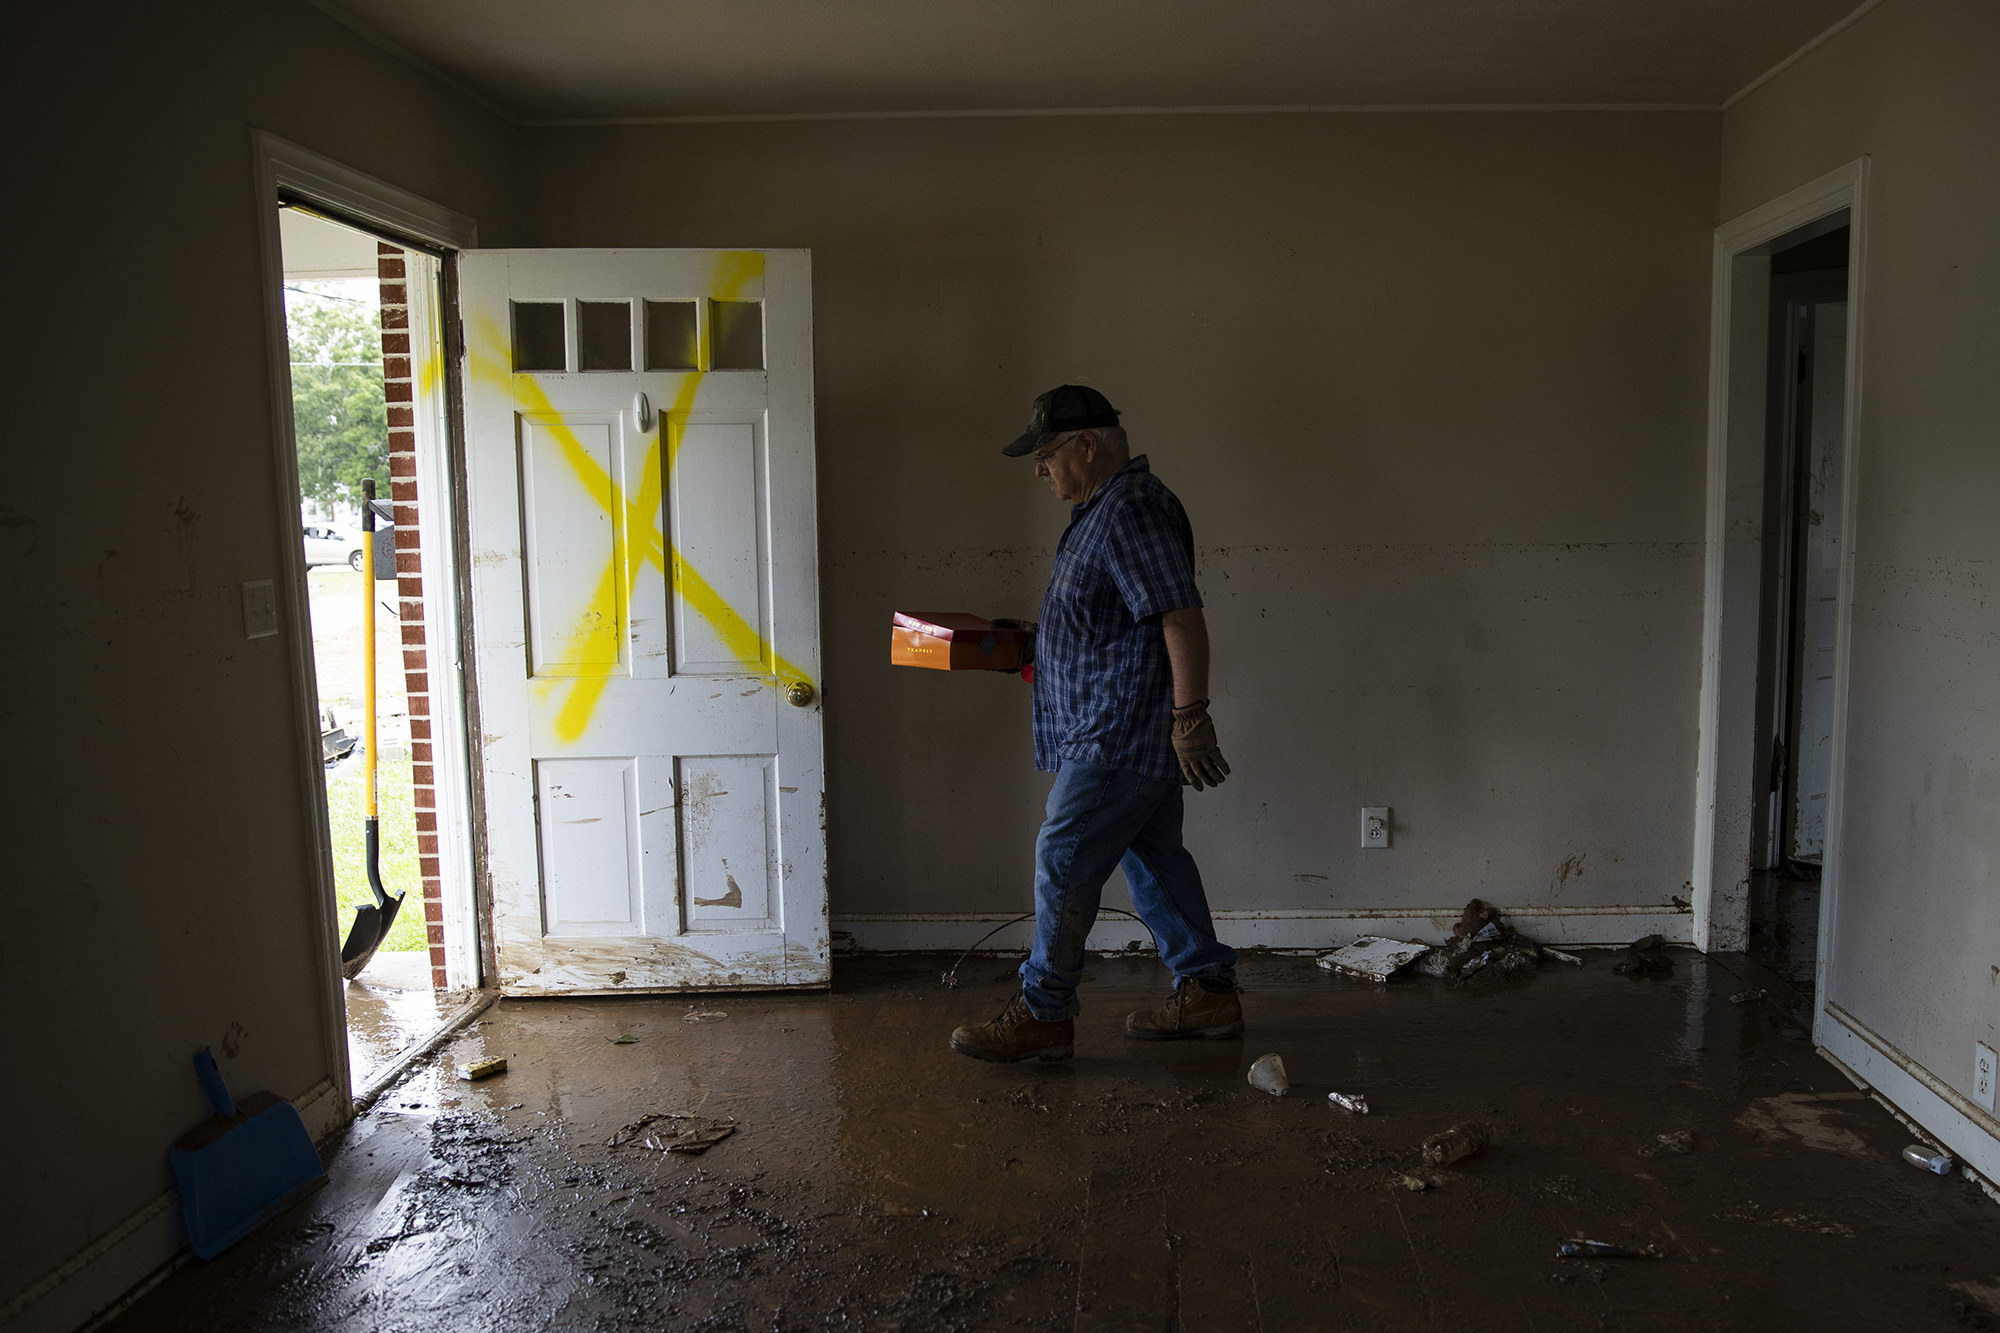 A man walks out of a house covered in mud with a spray-painted X on the door